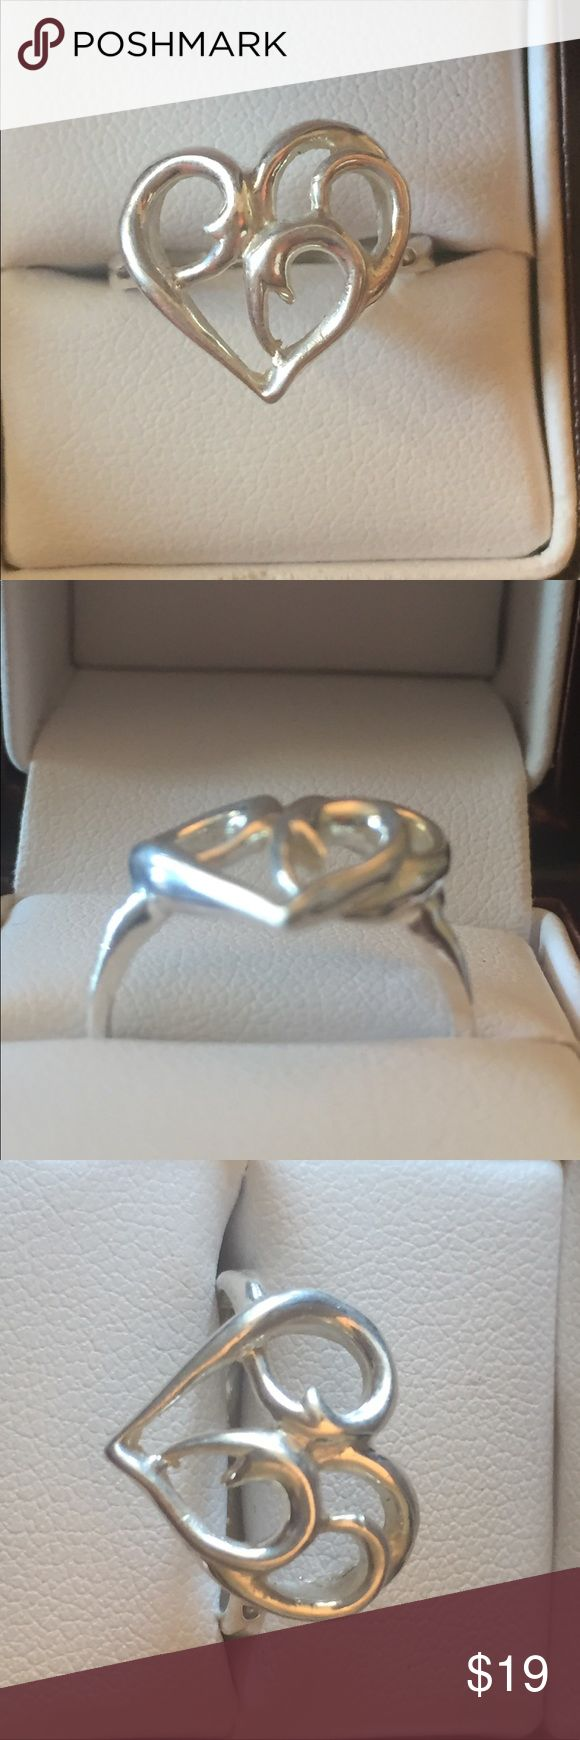 Sterling silver heart ring brand new, handmade Made by me in my studio this .925 sterling silver ring is a very beautiful modern take on the iconic heart shape. No nickel or fake metals, not a cheap import but a medium to heavy weight ring made to last for generations. Large design that will make a statement. I'm a master jeweler and metalsmith and this is one of my designs. I can size this ring if you need me to, and thanks for looking. The inside is stamped STERLING. Jewelry Rings